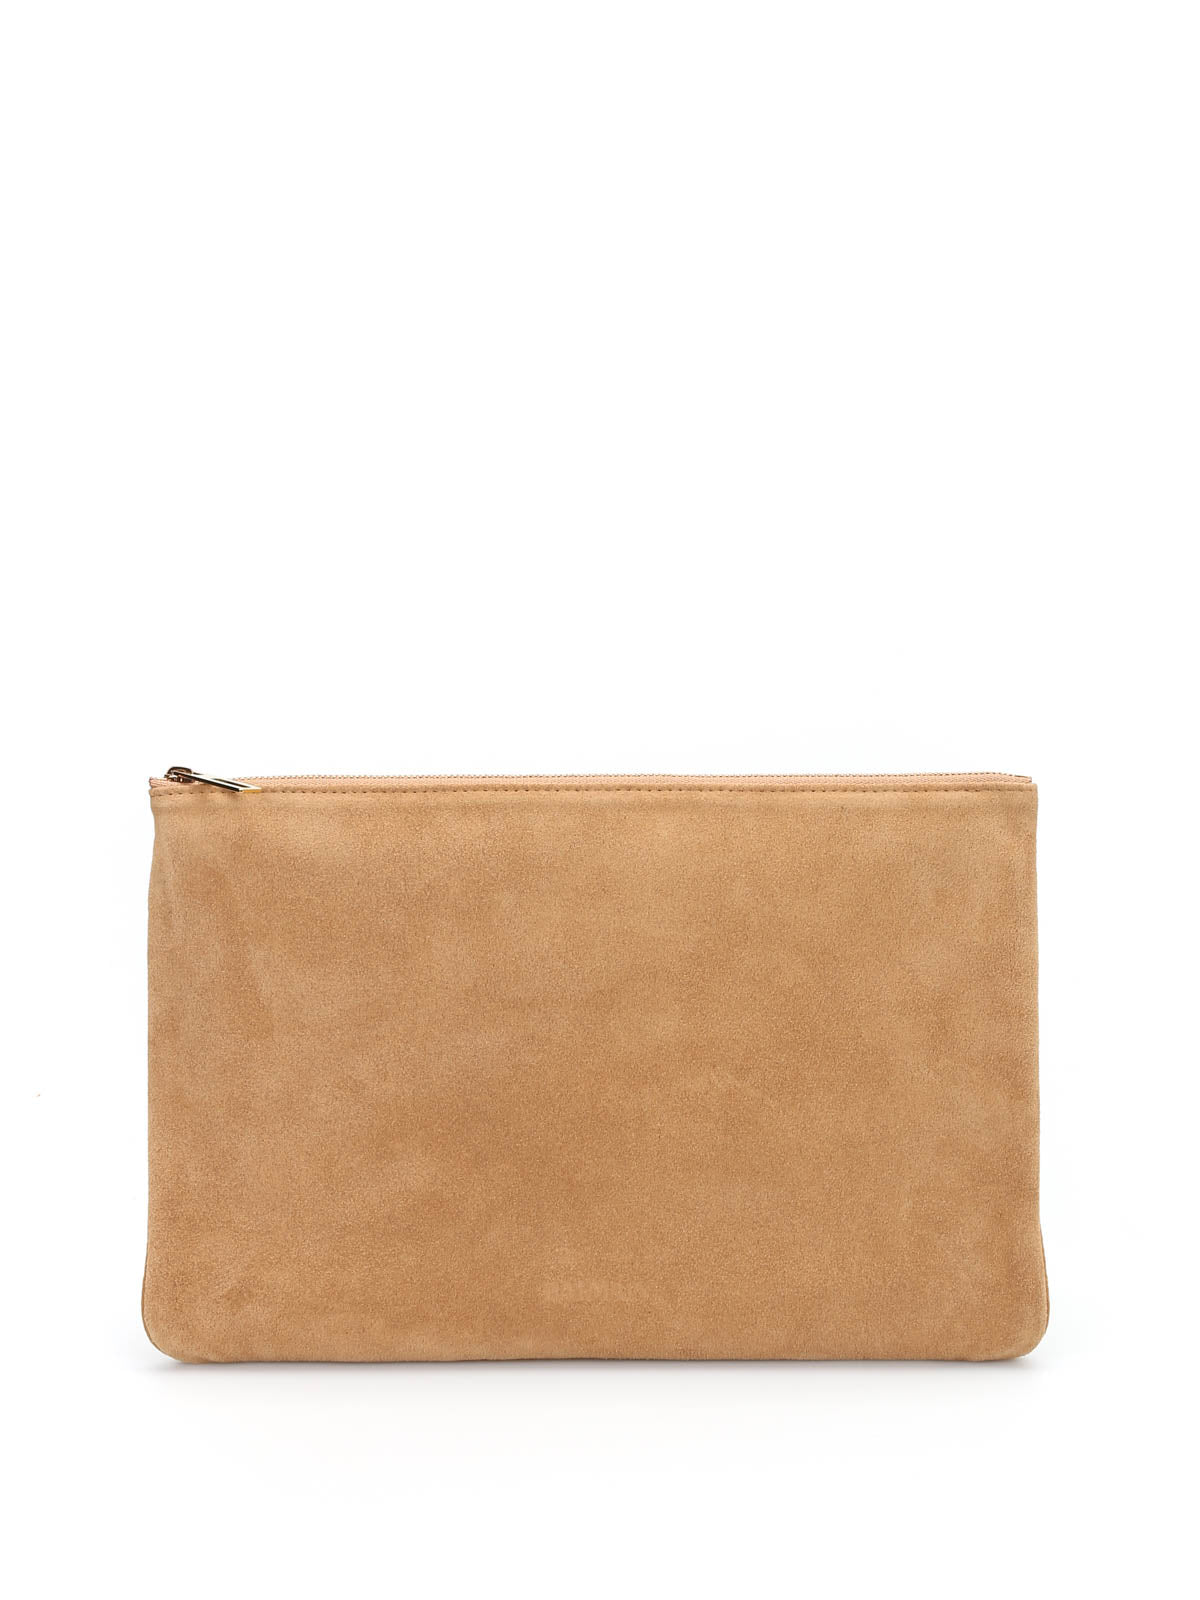 BALMAIN SUEDE CLUTCH BAG